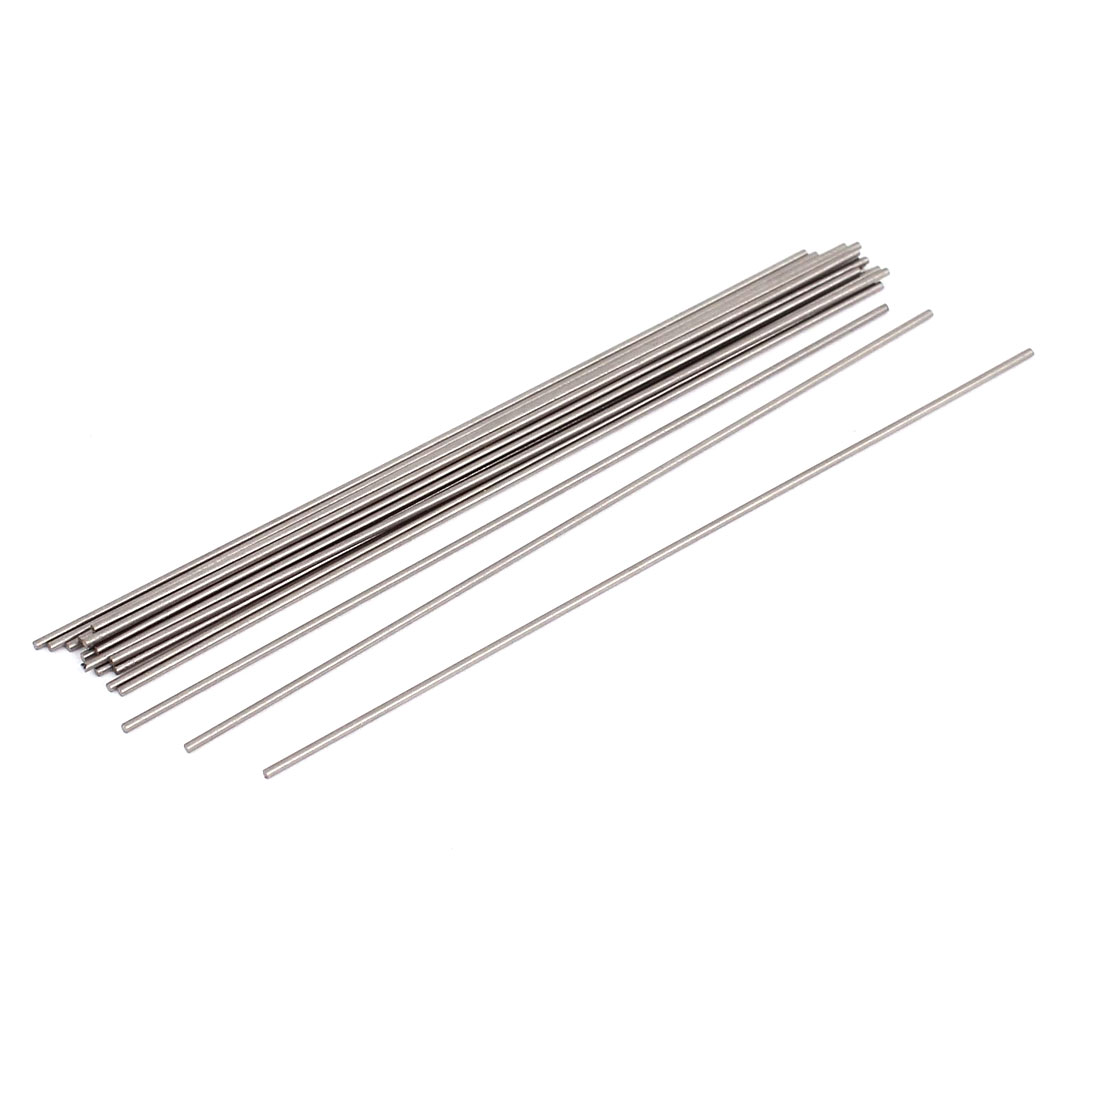 20 Pcs Steel Round Stock Lathe Turning Tool Bars 1mm Diameter 100mm Long by